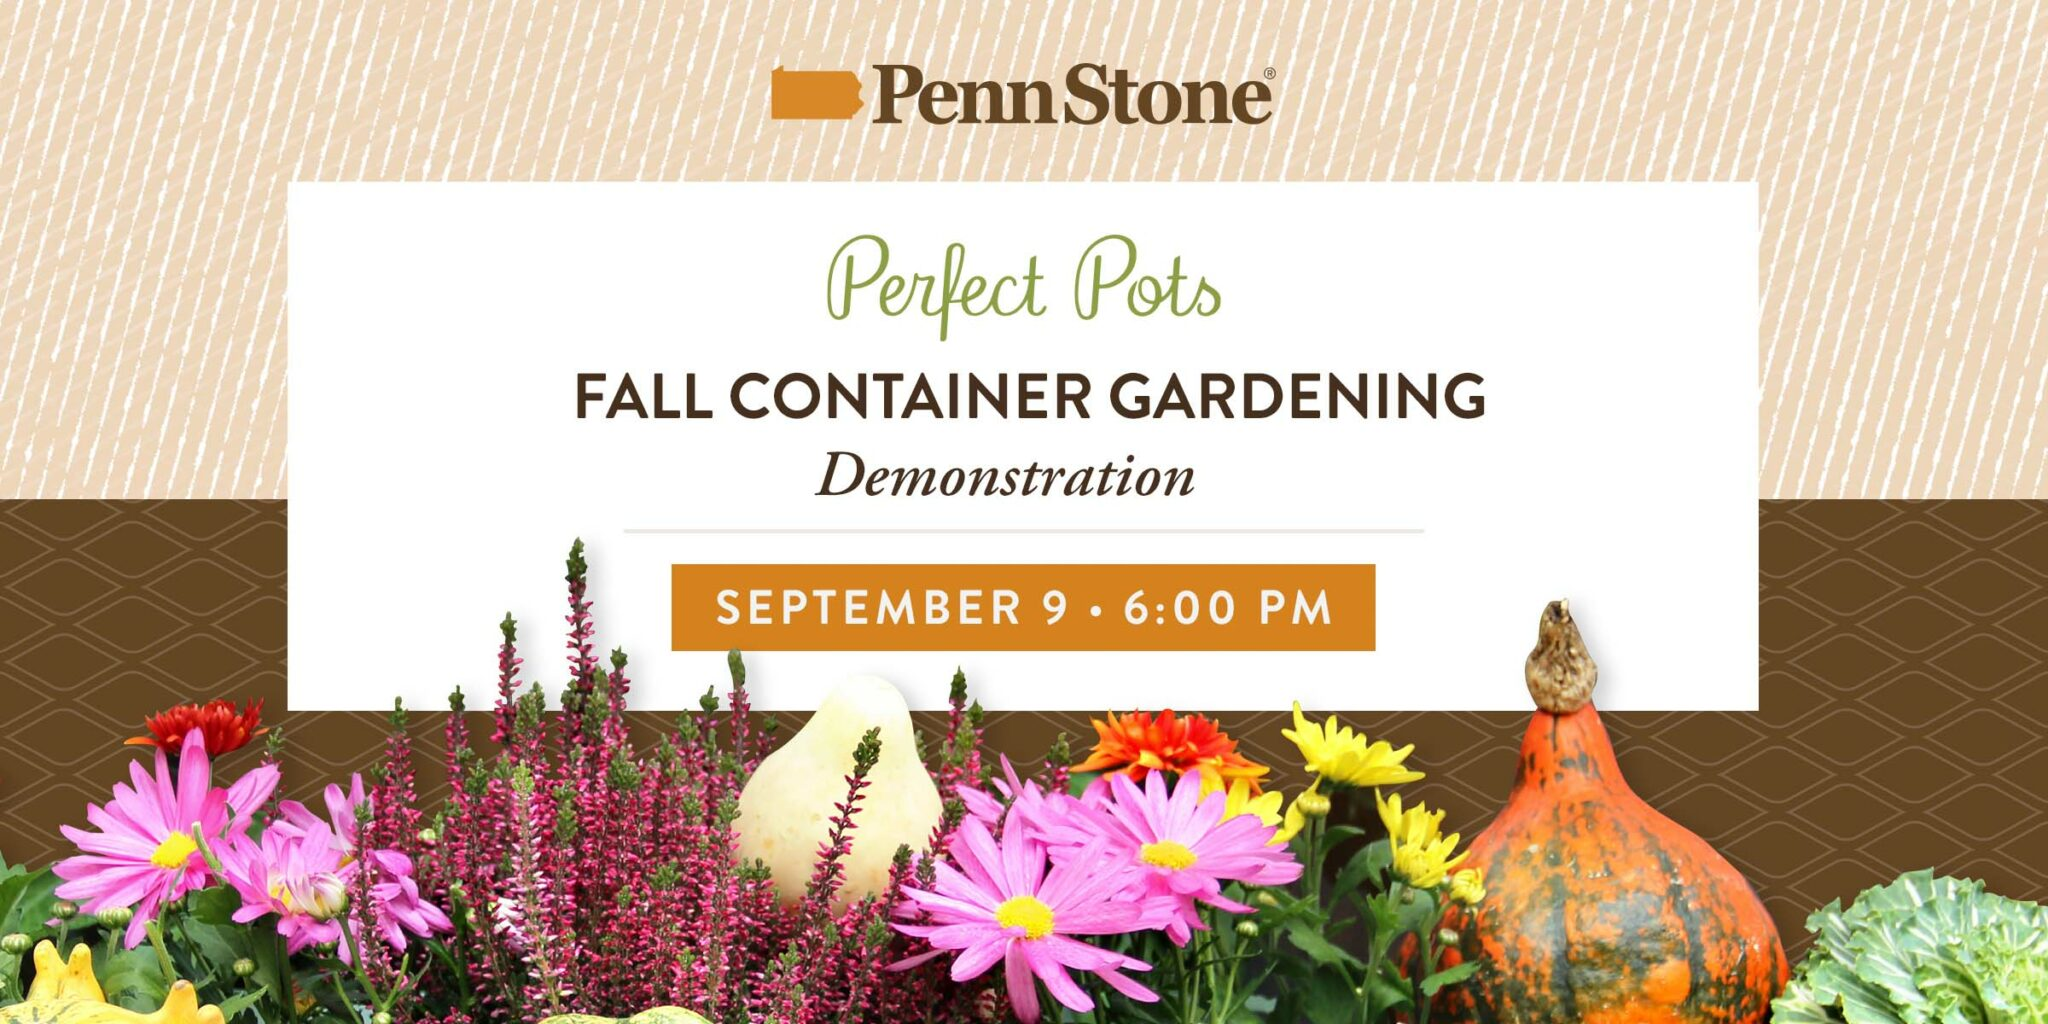 on september penn stone will host a fall container gardening demonstration featring laura lapp from perfect pots